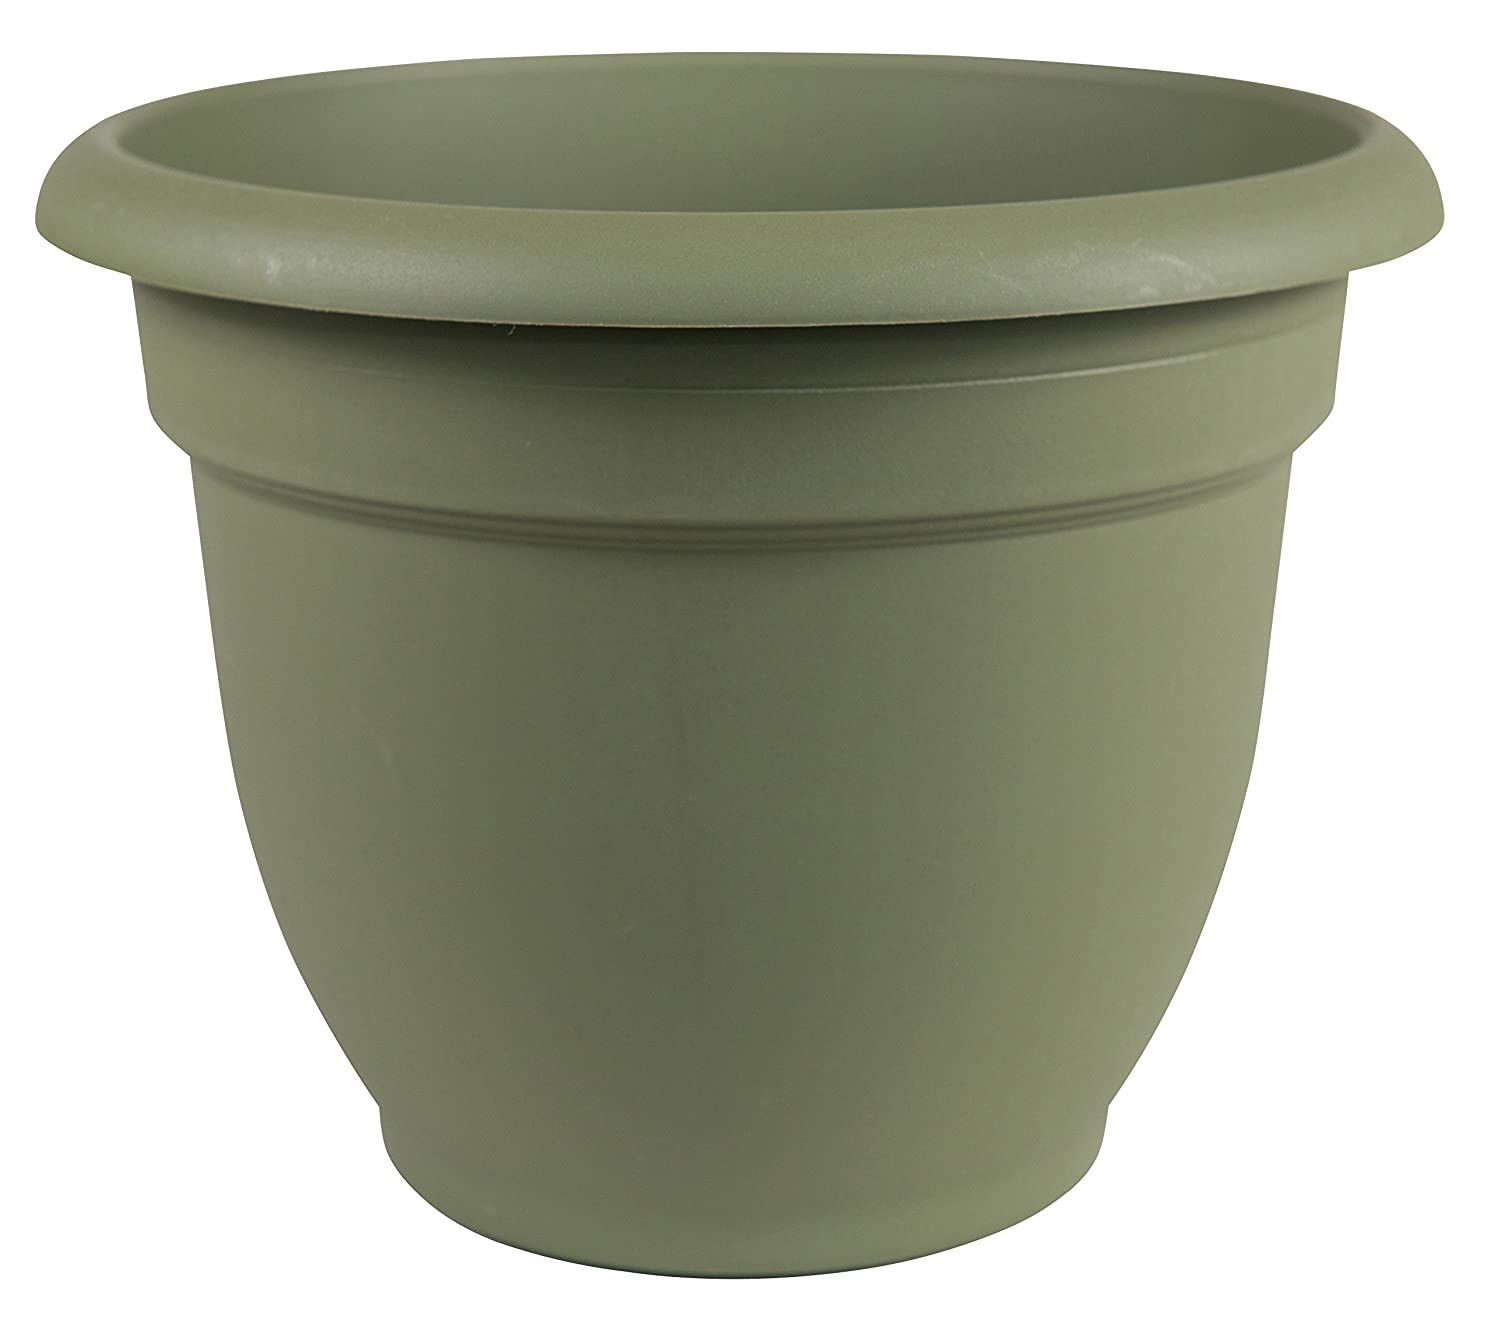 Bloem 20-56420 Fiskars 20 Inch Ariana Planter with Self-Watering Grid, Thyme Green